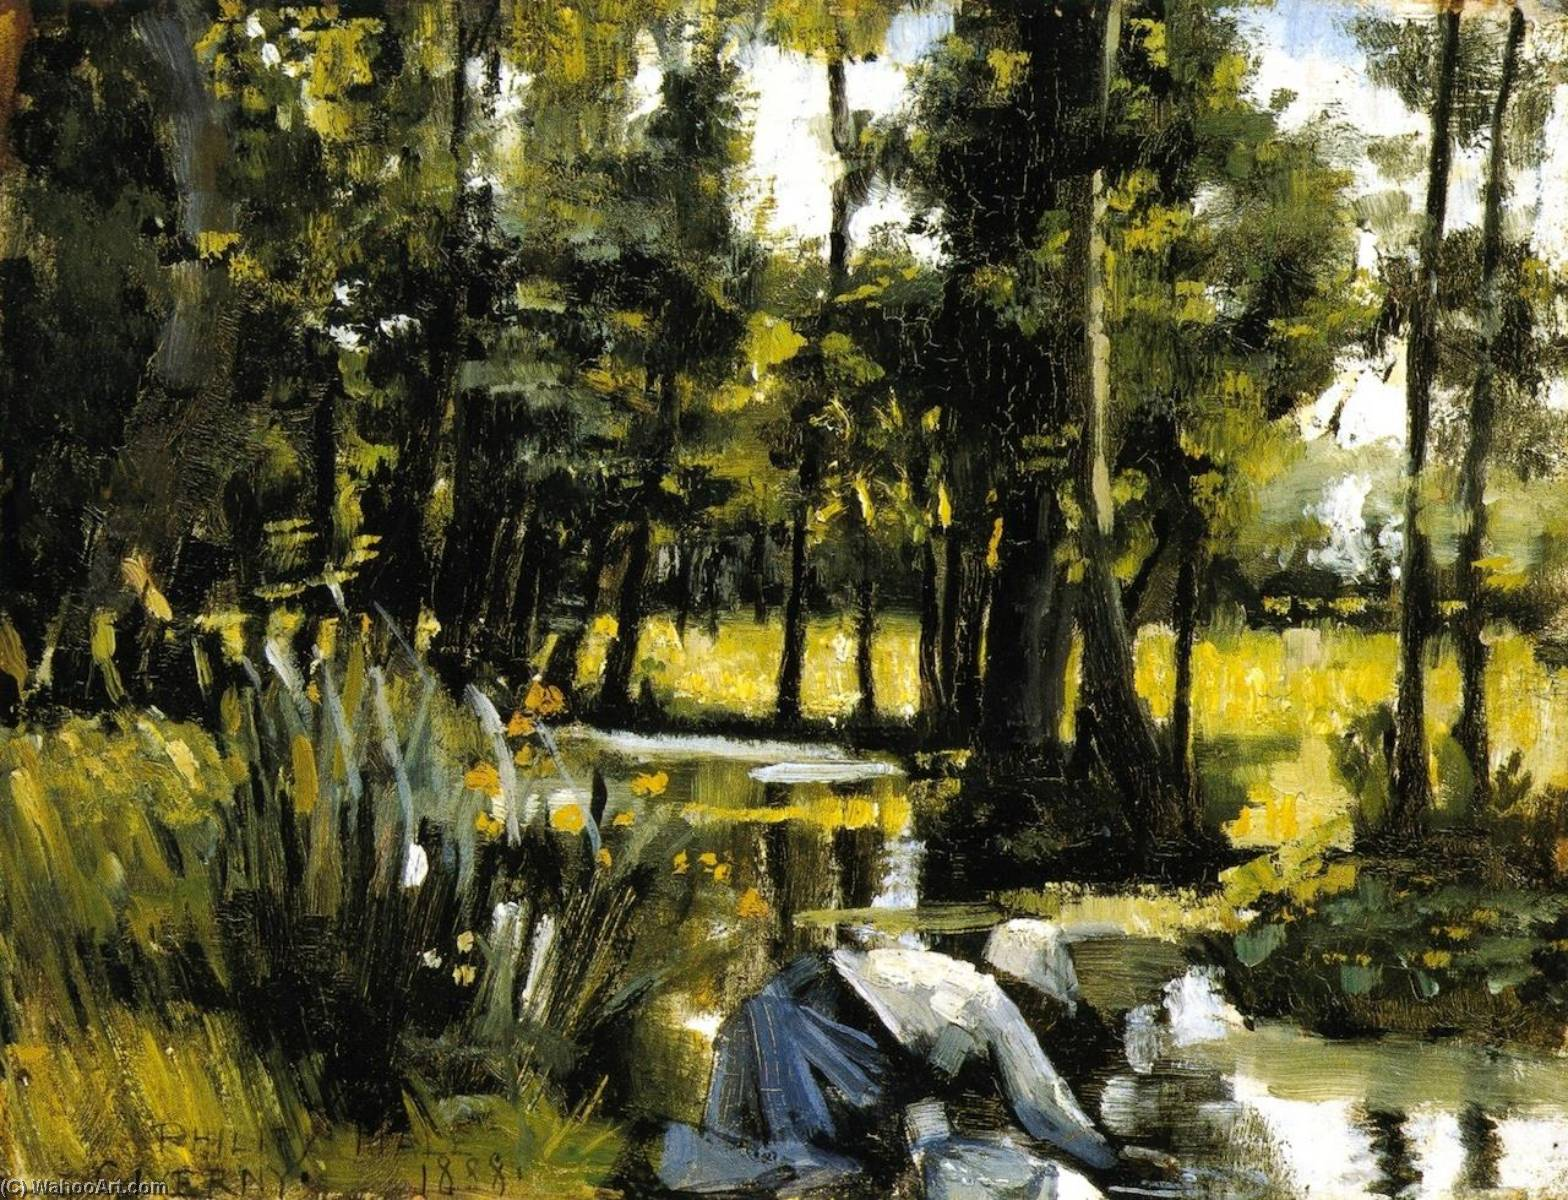 Wikioo.org - The Encyclopedia of Fine Arts - Painting, Artwork by Philip Leslie Hale - Landscape with Figures